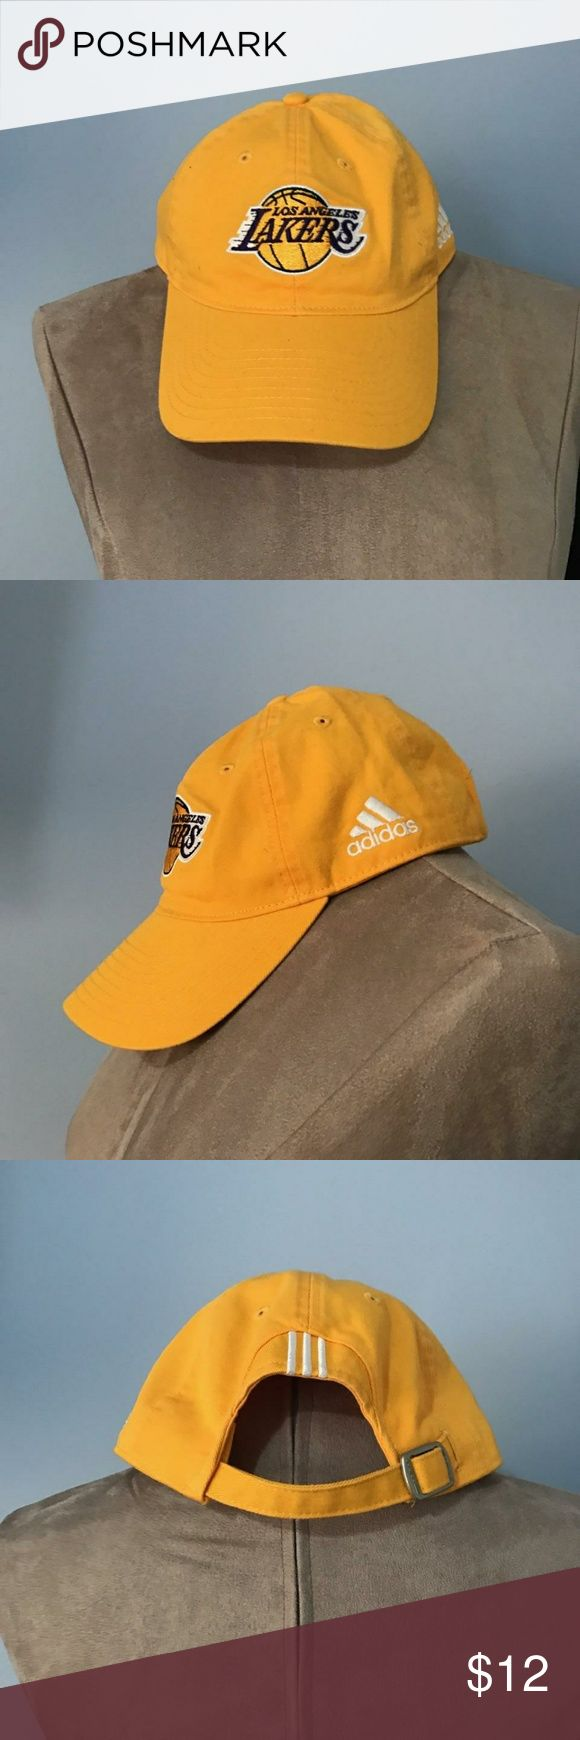 Adidas, Lakers Cap NWOT, Buckle back adjustable strap. adidas Accessories Hats